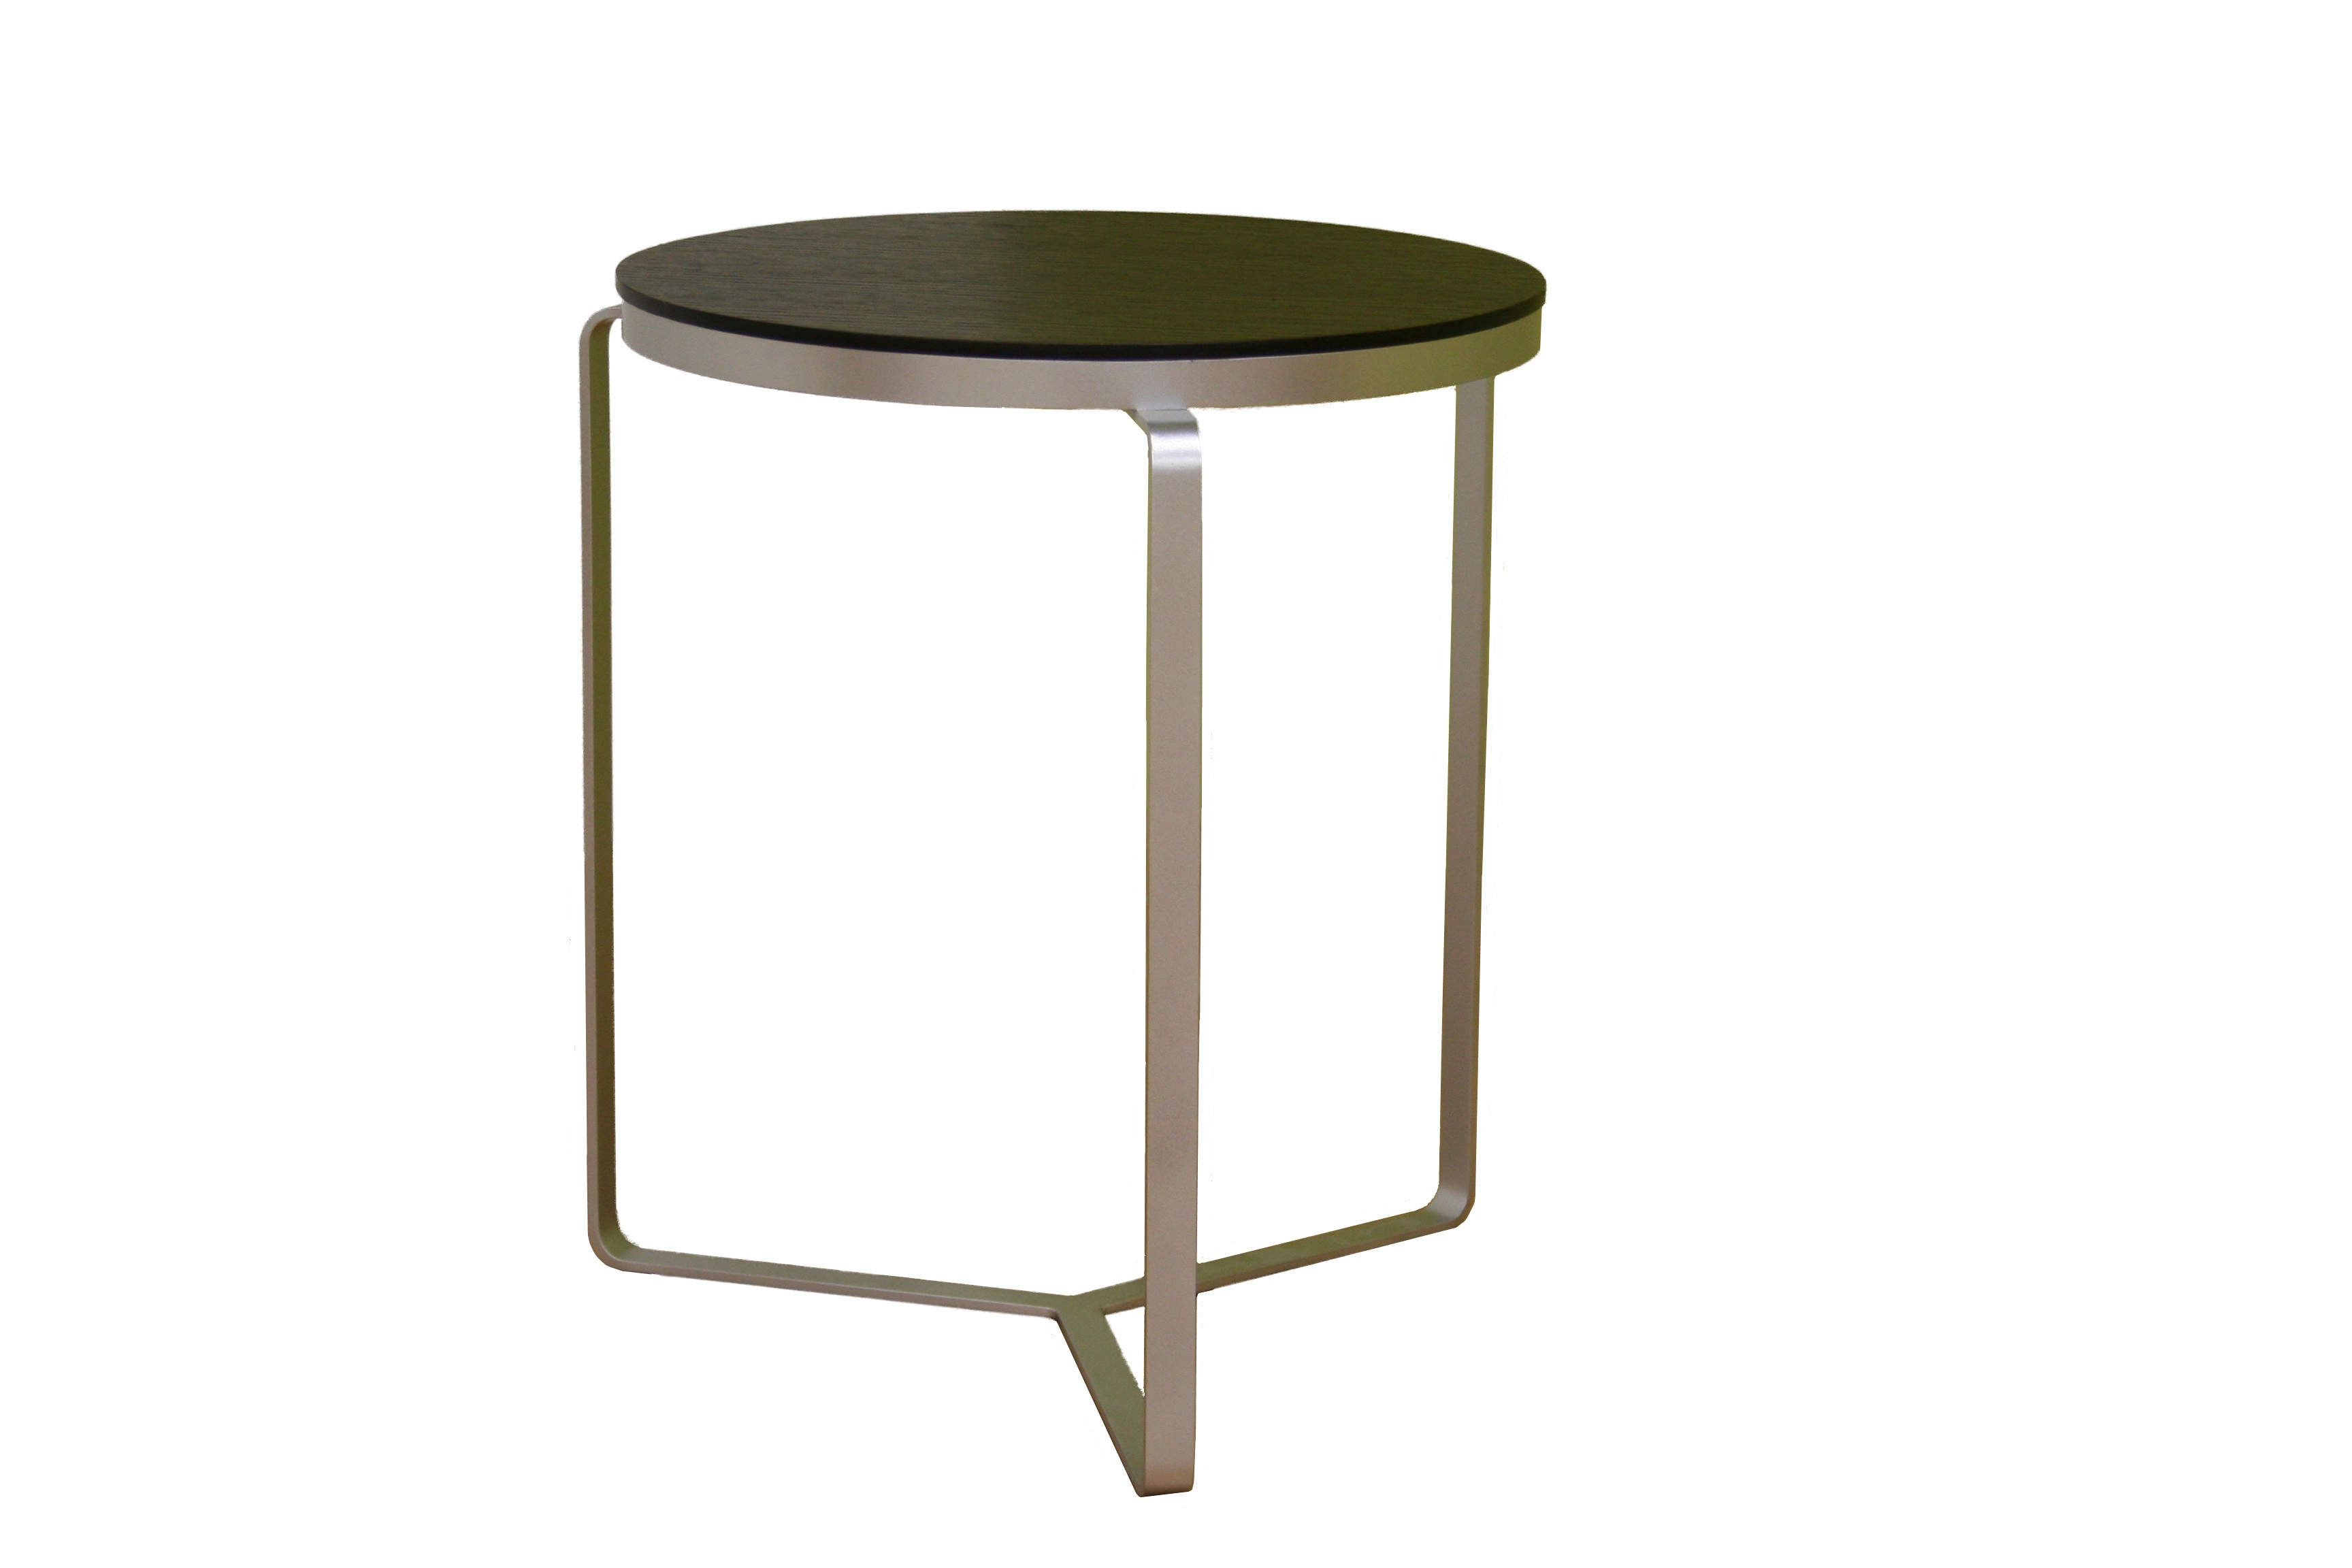 Furniture Gt Living Room Furniture Gt Table Gt 18 Inches High